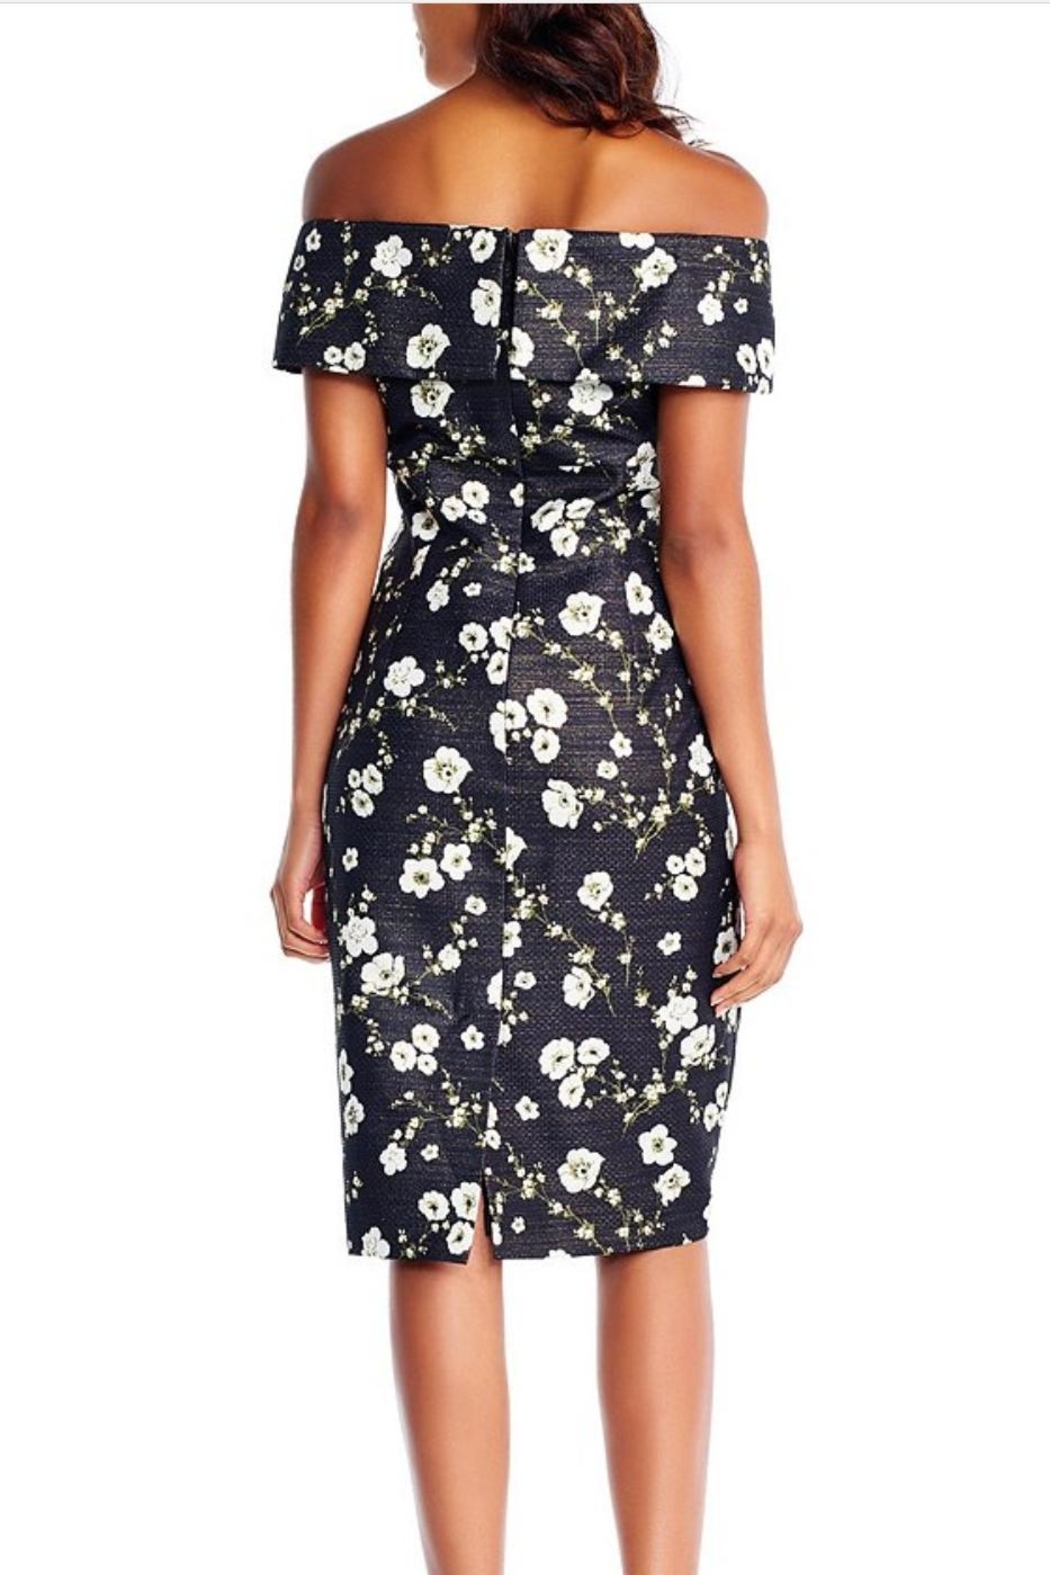 Adrianna Papell Floral Printed Metallic Dress - Front Full Image